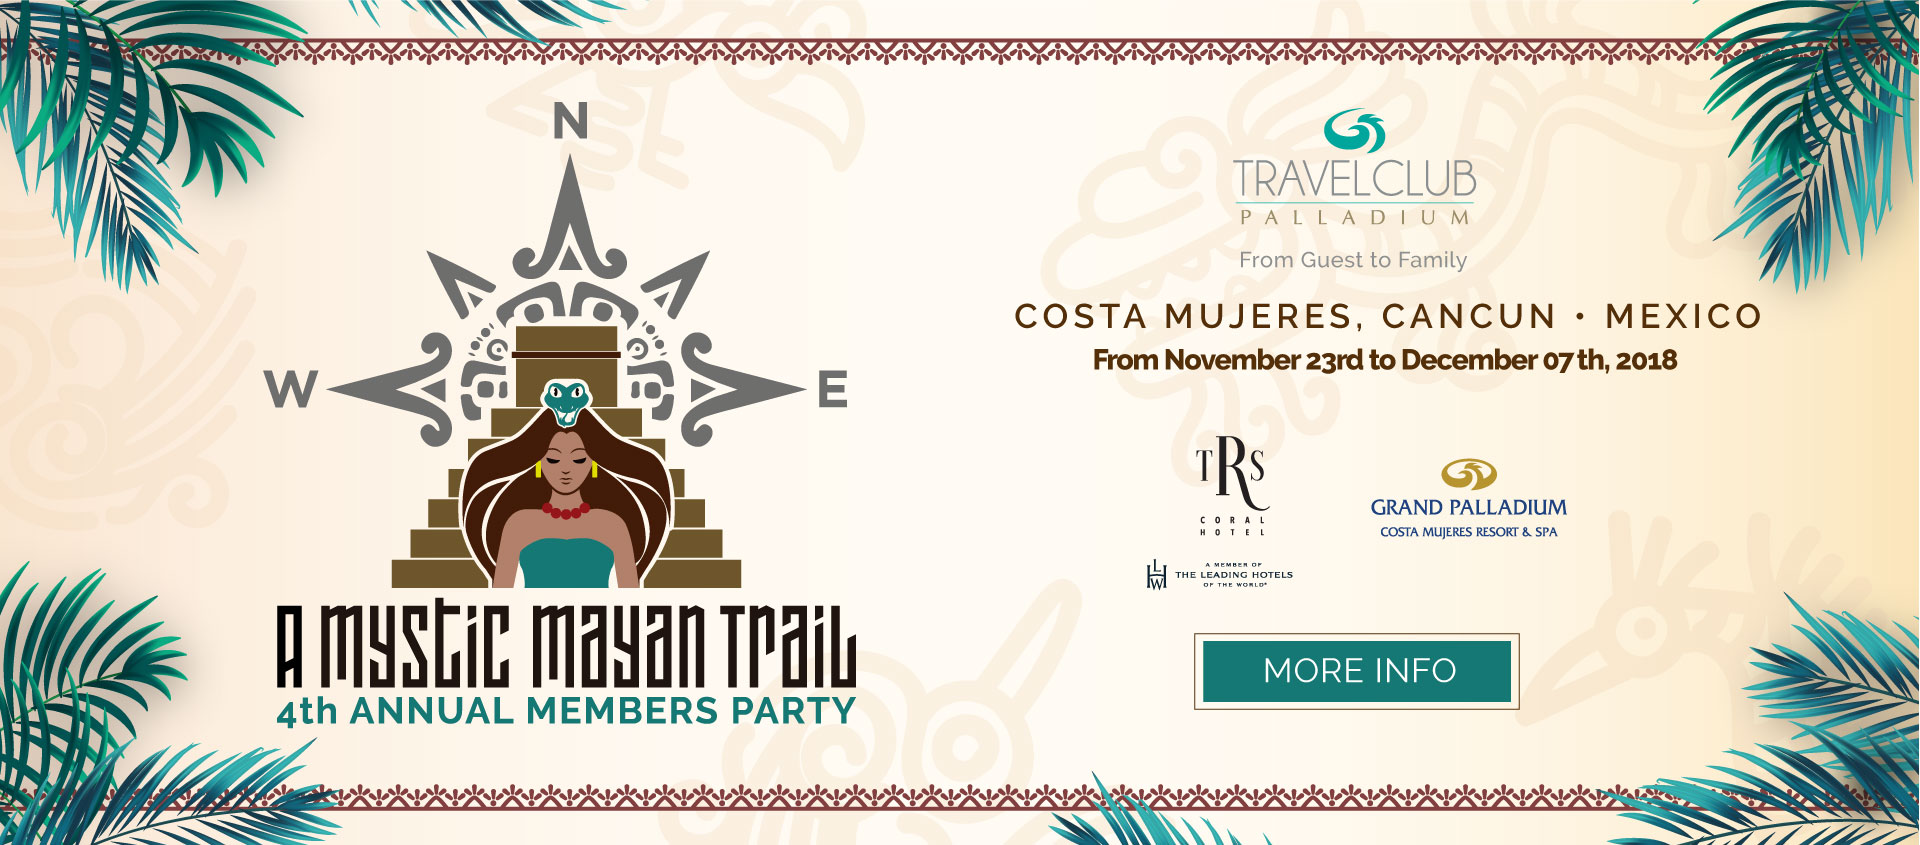 4th Annual Members Party in Costa Mujeres